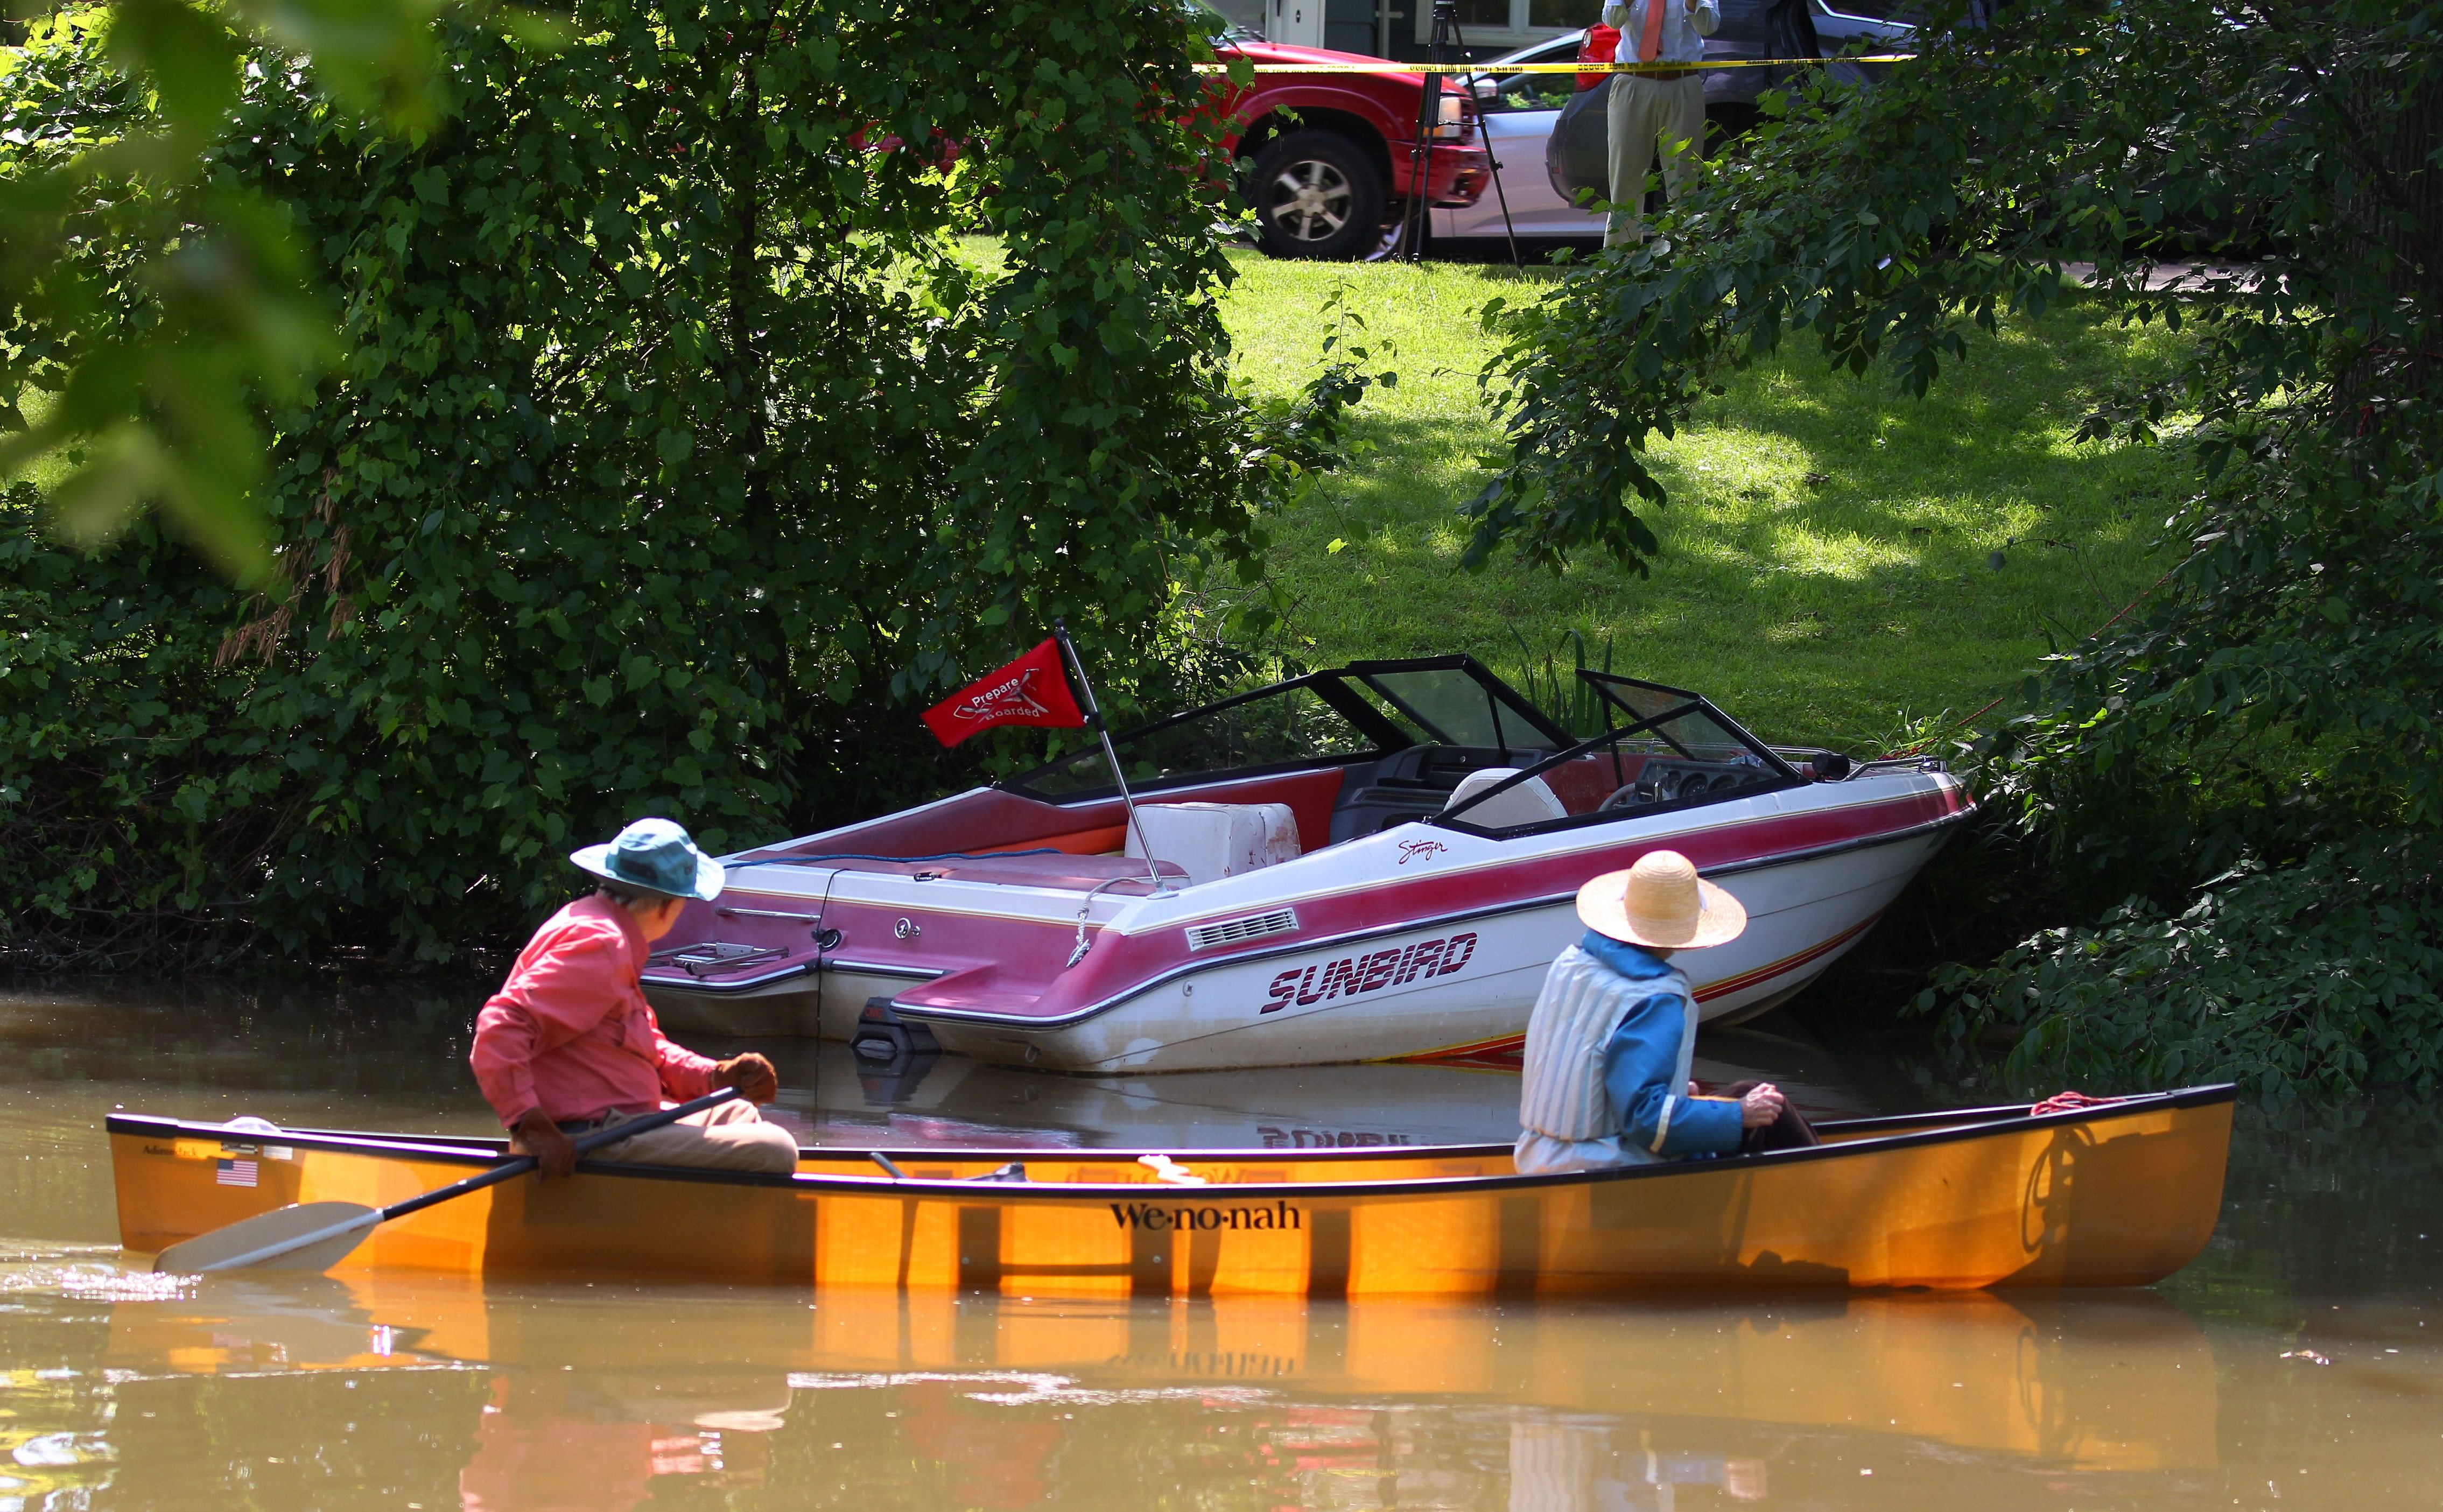 A couple paddles past the boat that was involved in an accident resulting in the death of 16-year-old Avery Gardner on Ellicott Creek in Tonawanda in 2015. (Mark Mulville/News file photo)